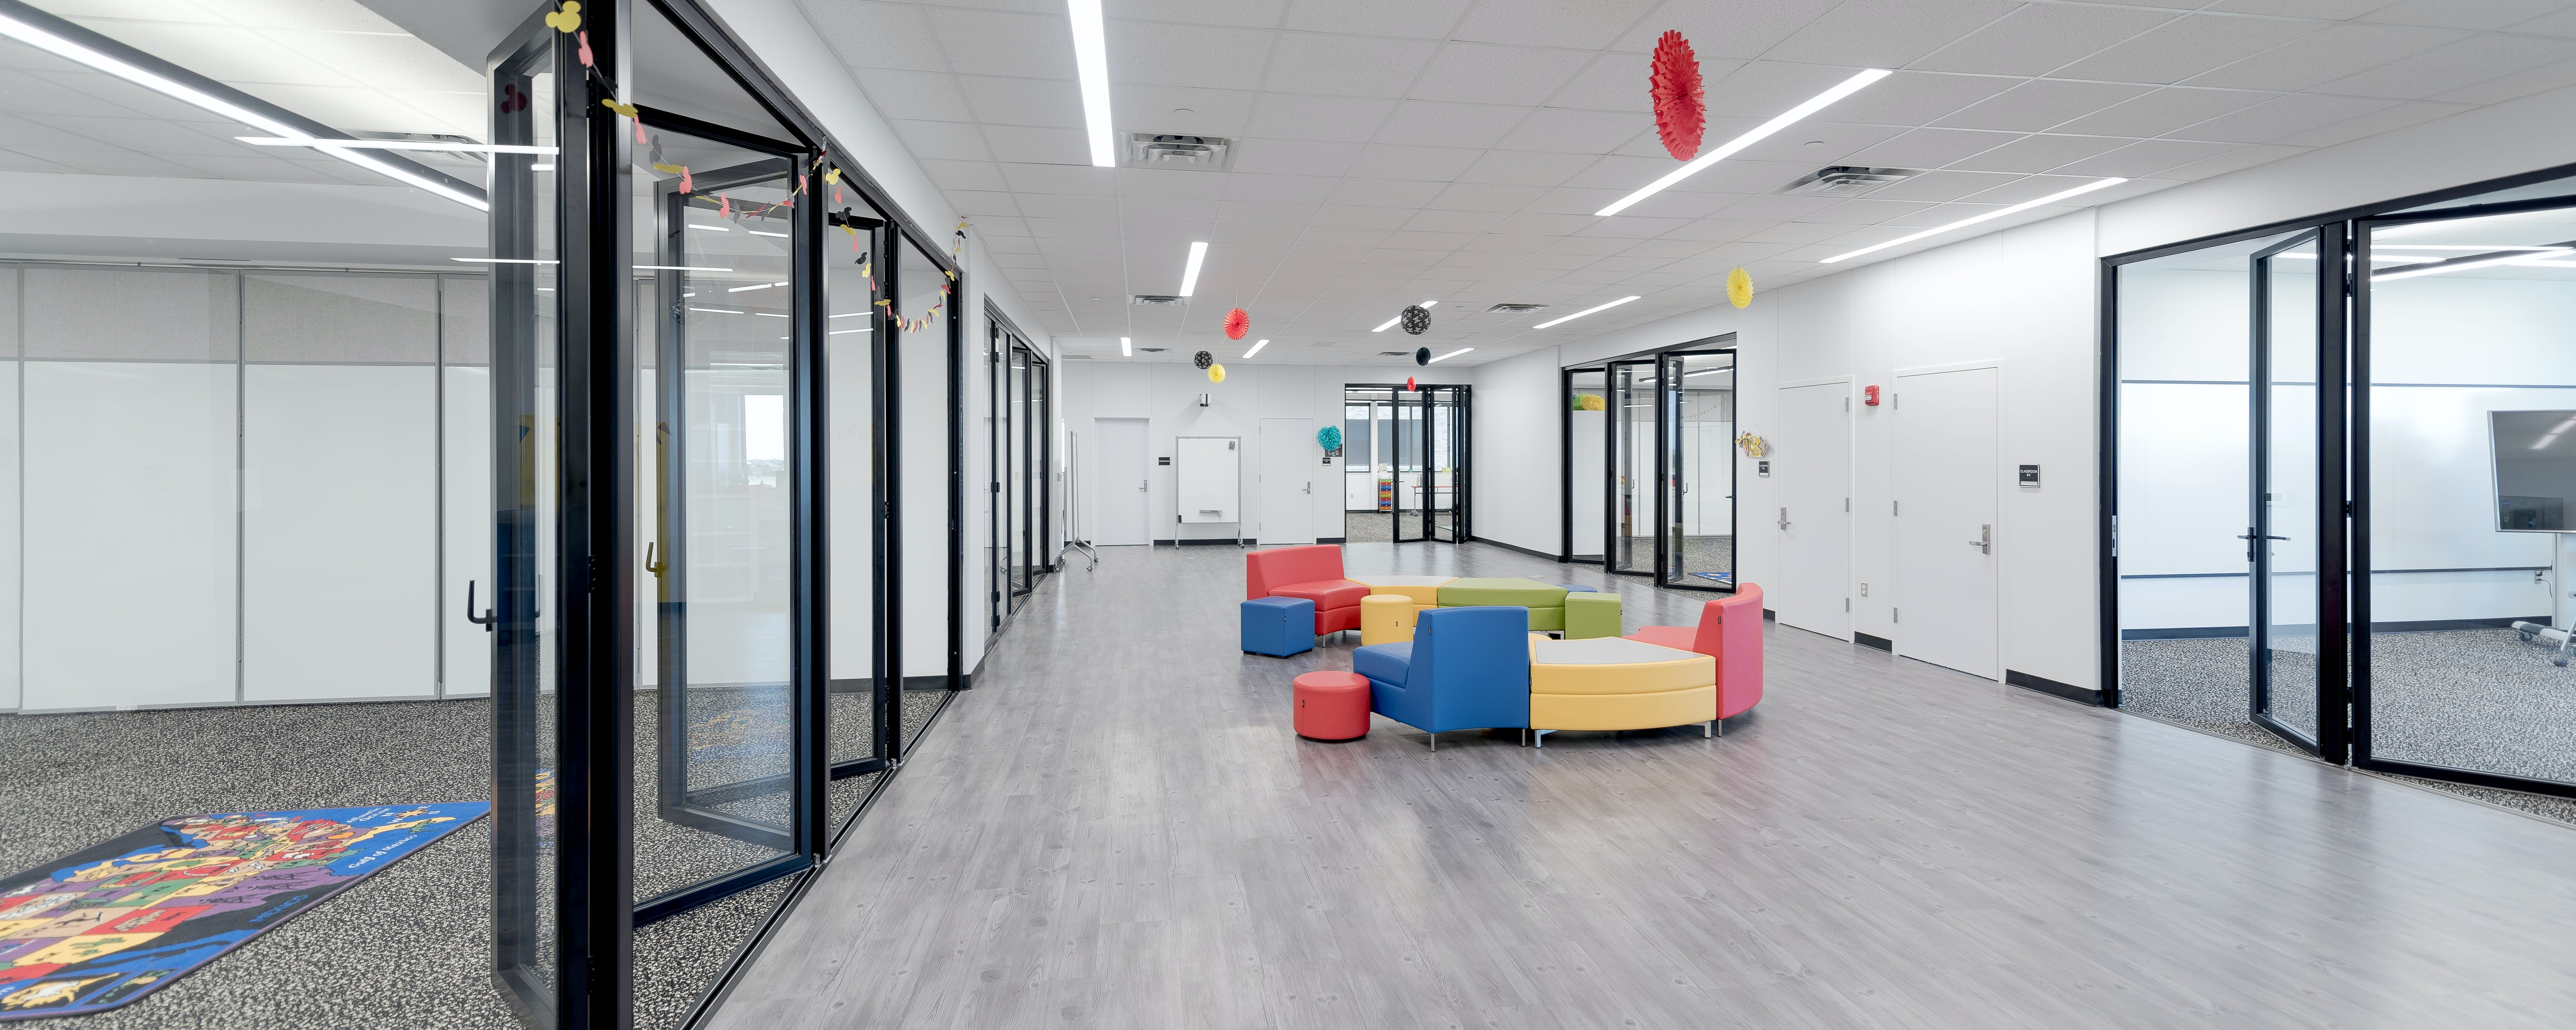 Learning by Design-Summer 2021: The Need for Flexible Learning Spaces